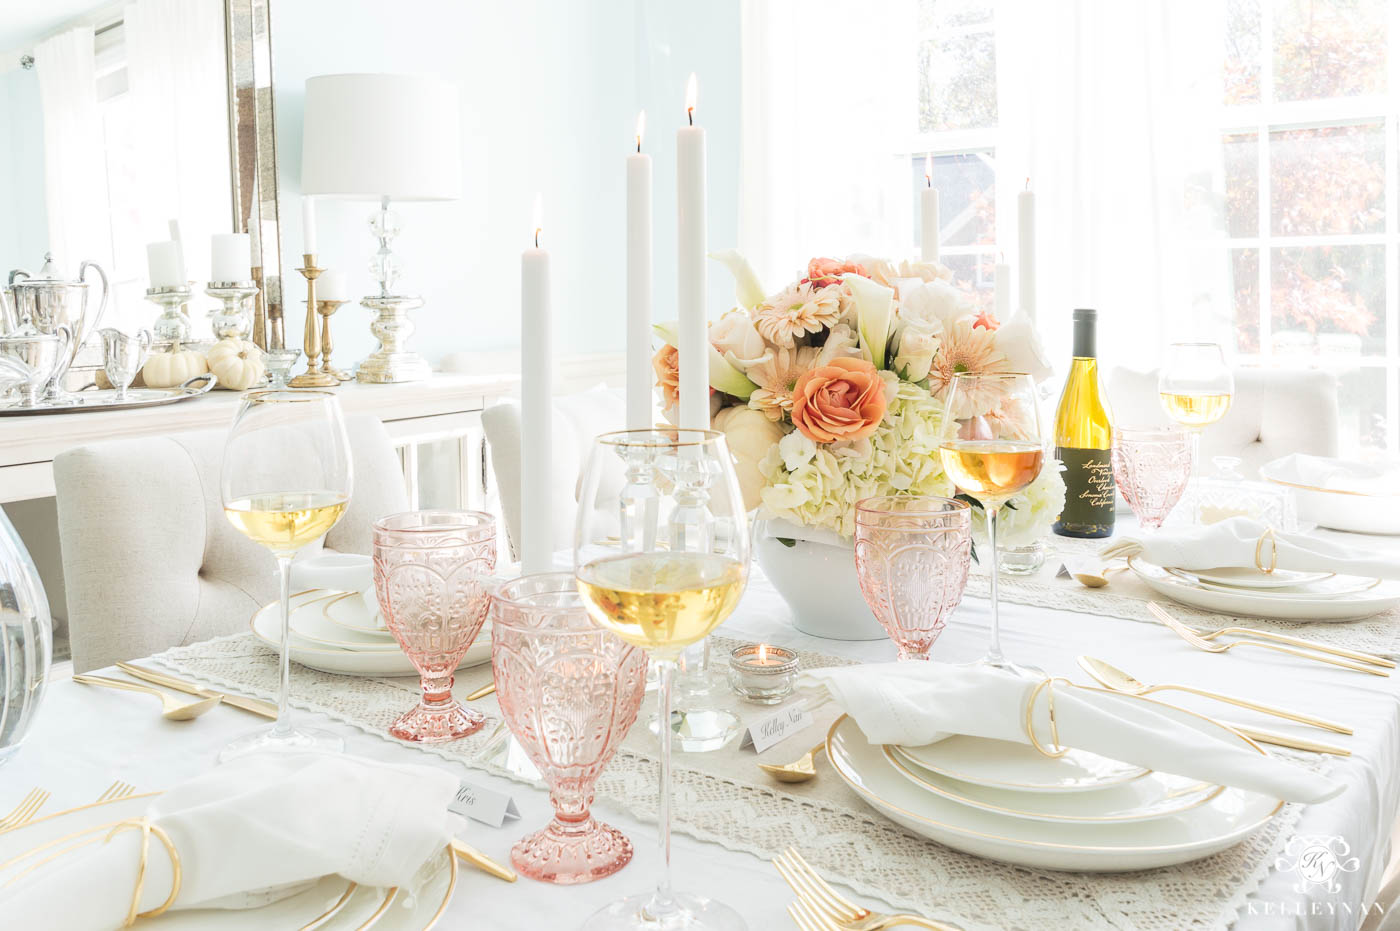 Thanksgiving tablescape ideas and decorations